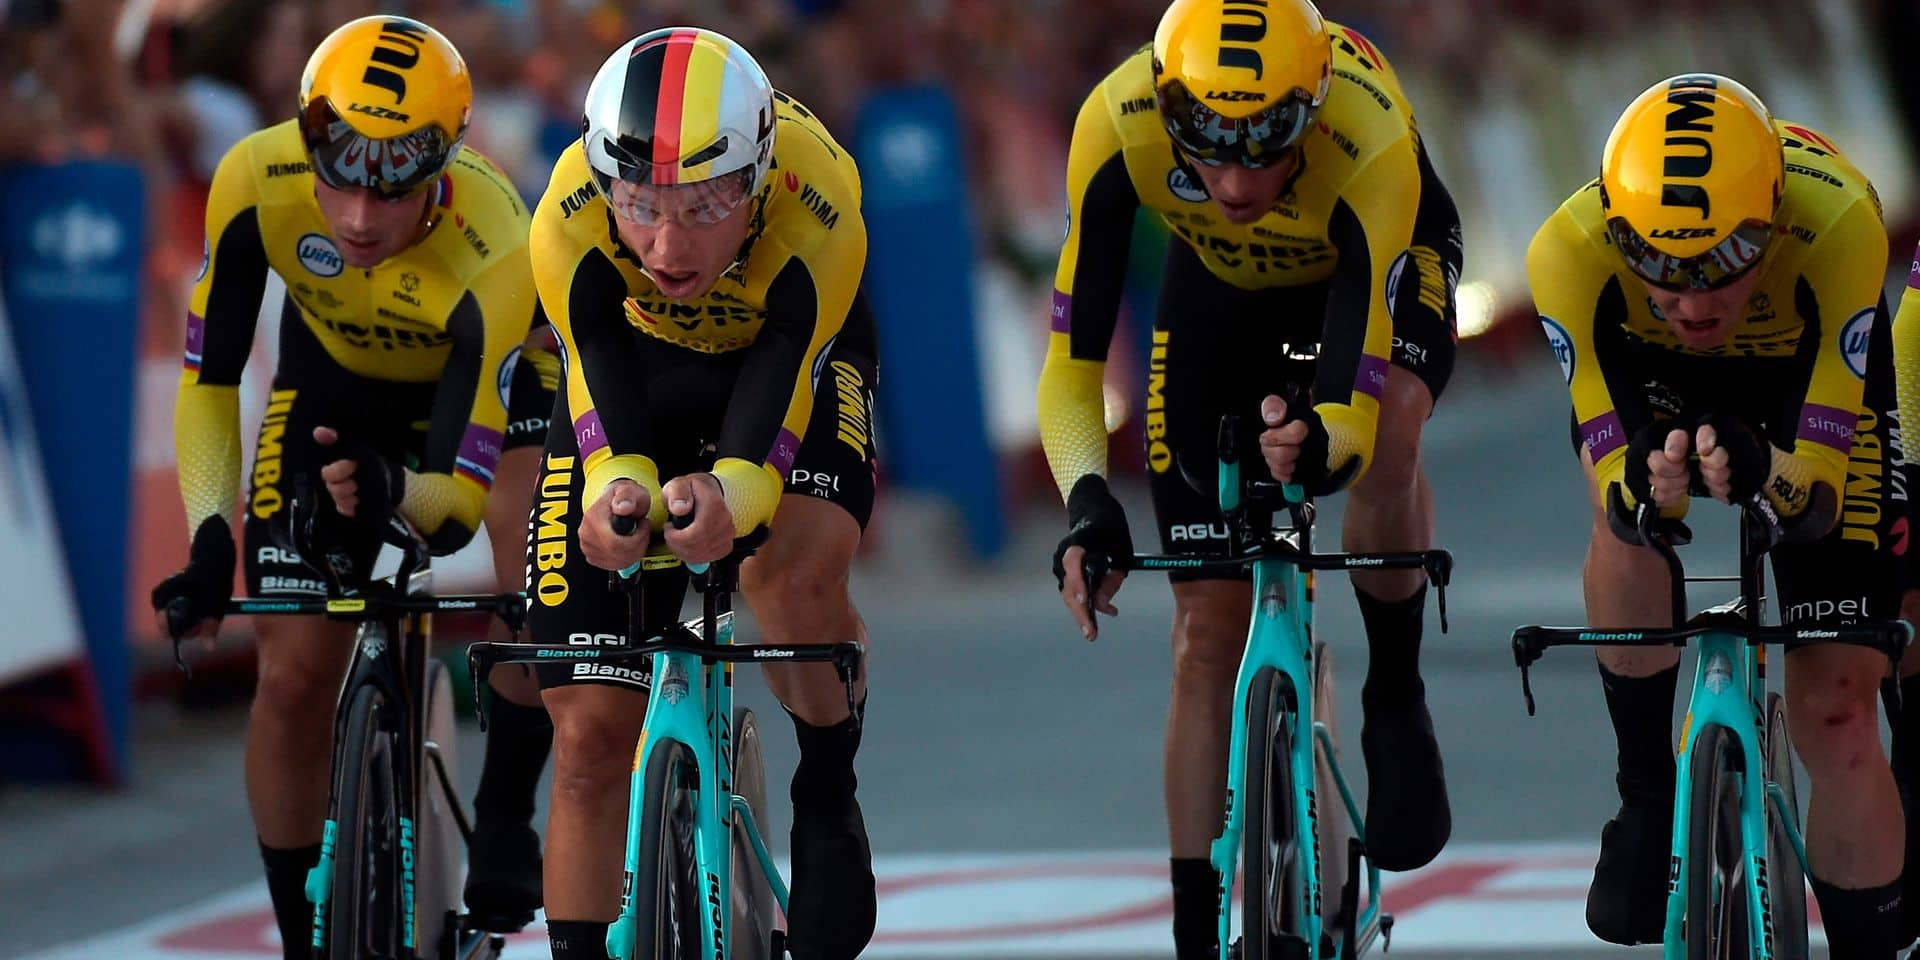 Team Jumbo Team Jumbo-Visma Slovenia's cylcist Primoz Roglic and teammates compete during the first stage of the 2019 La Vuelta cycling tour of Spain, a 13,4 km race against the clock between Salinas de Torrevieja and Torrevieja on August 24, 2019. (Photo by JOSE JORDAN / AFP)